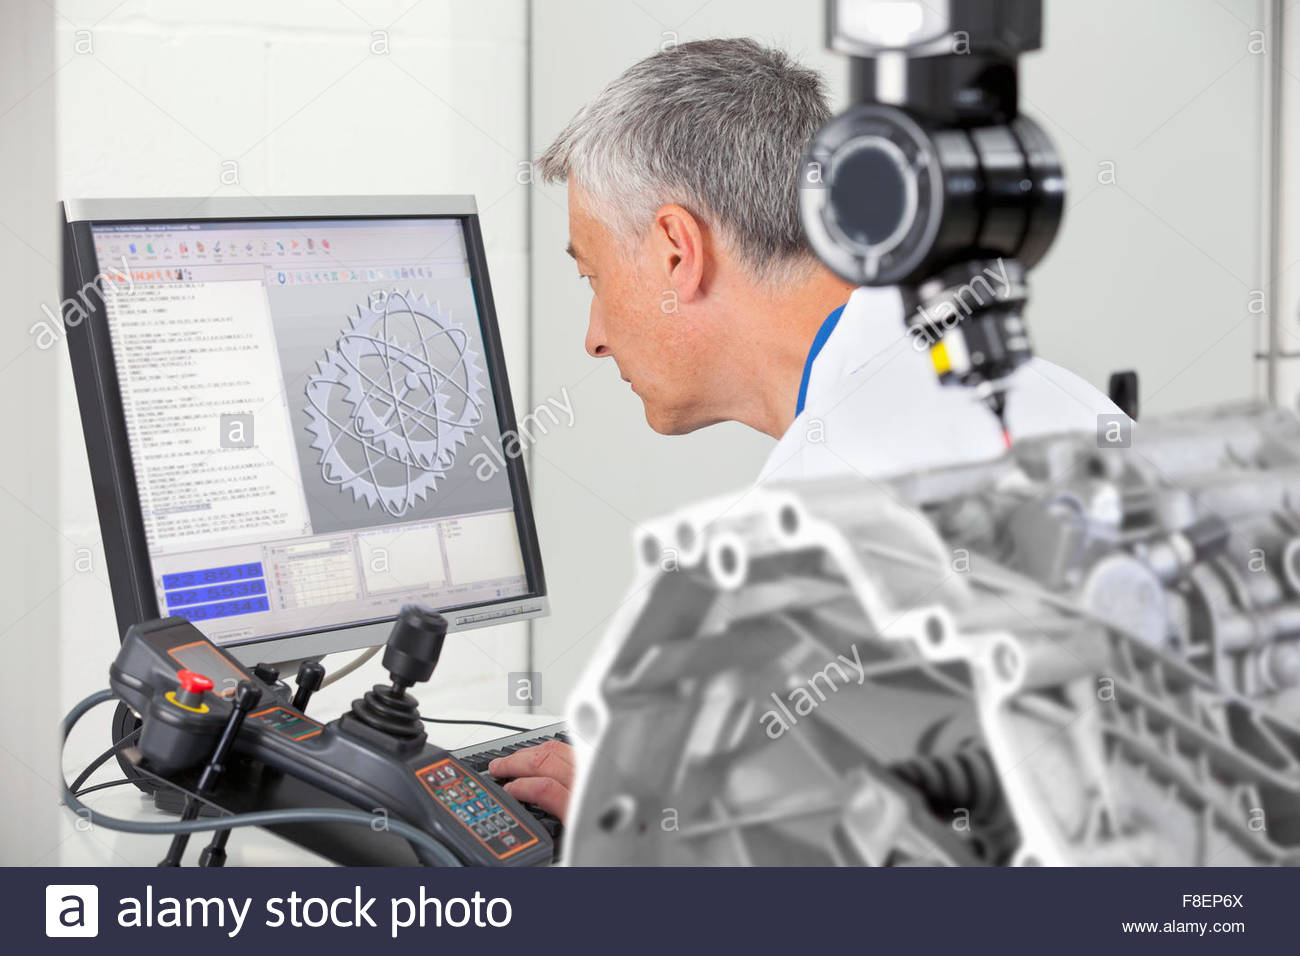 Engineer working at computer behind probe scanning engine block - Stock Image